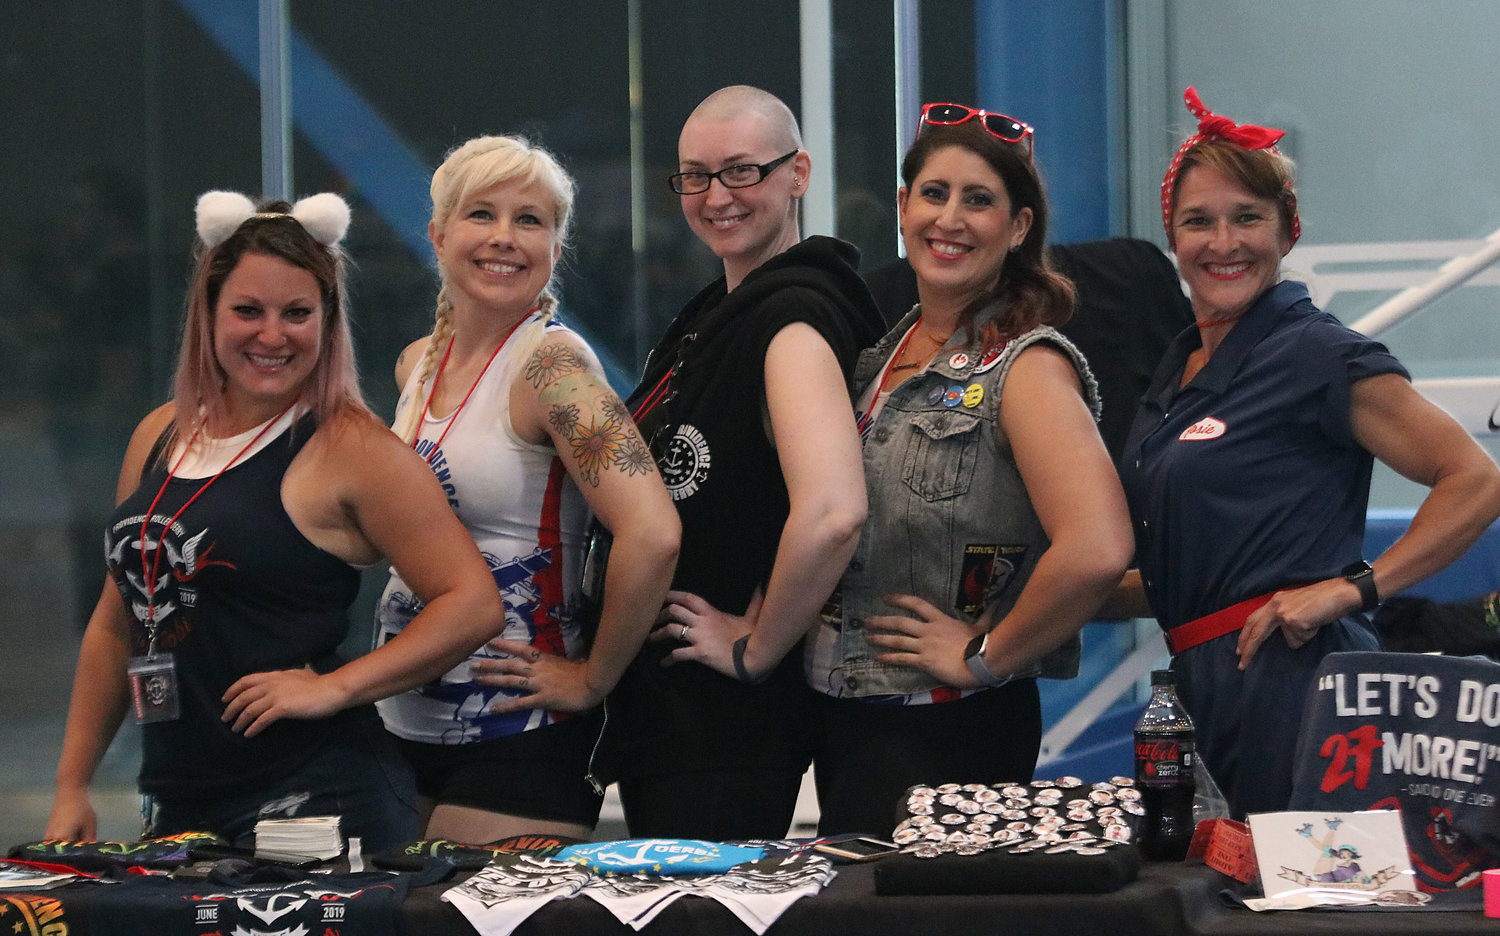 Providence Roller Derby members from left, Shannon Haluck, Sis Boom Bonnie, Apocalypse Meow, Varla Gunz and Rosie Can't Catch-a-Torie pose behind the souvenir